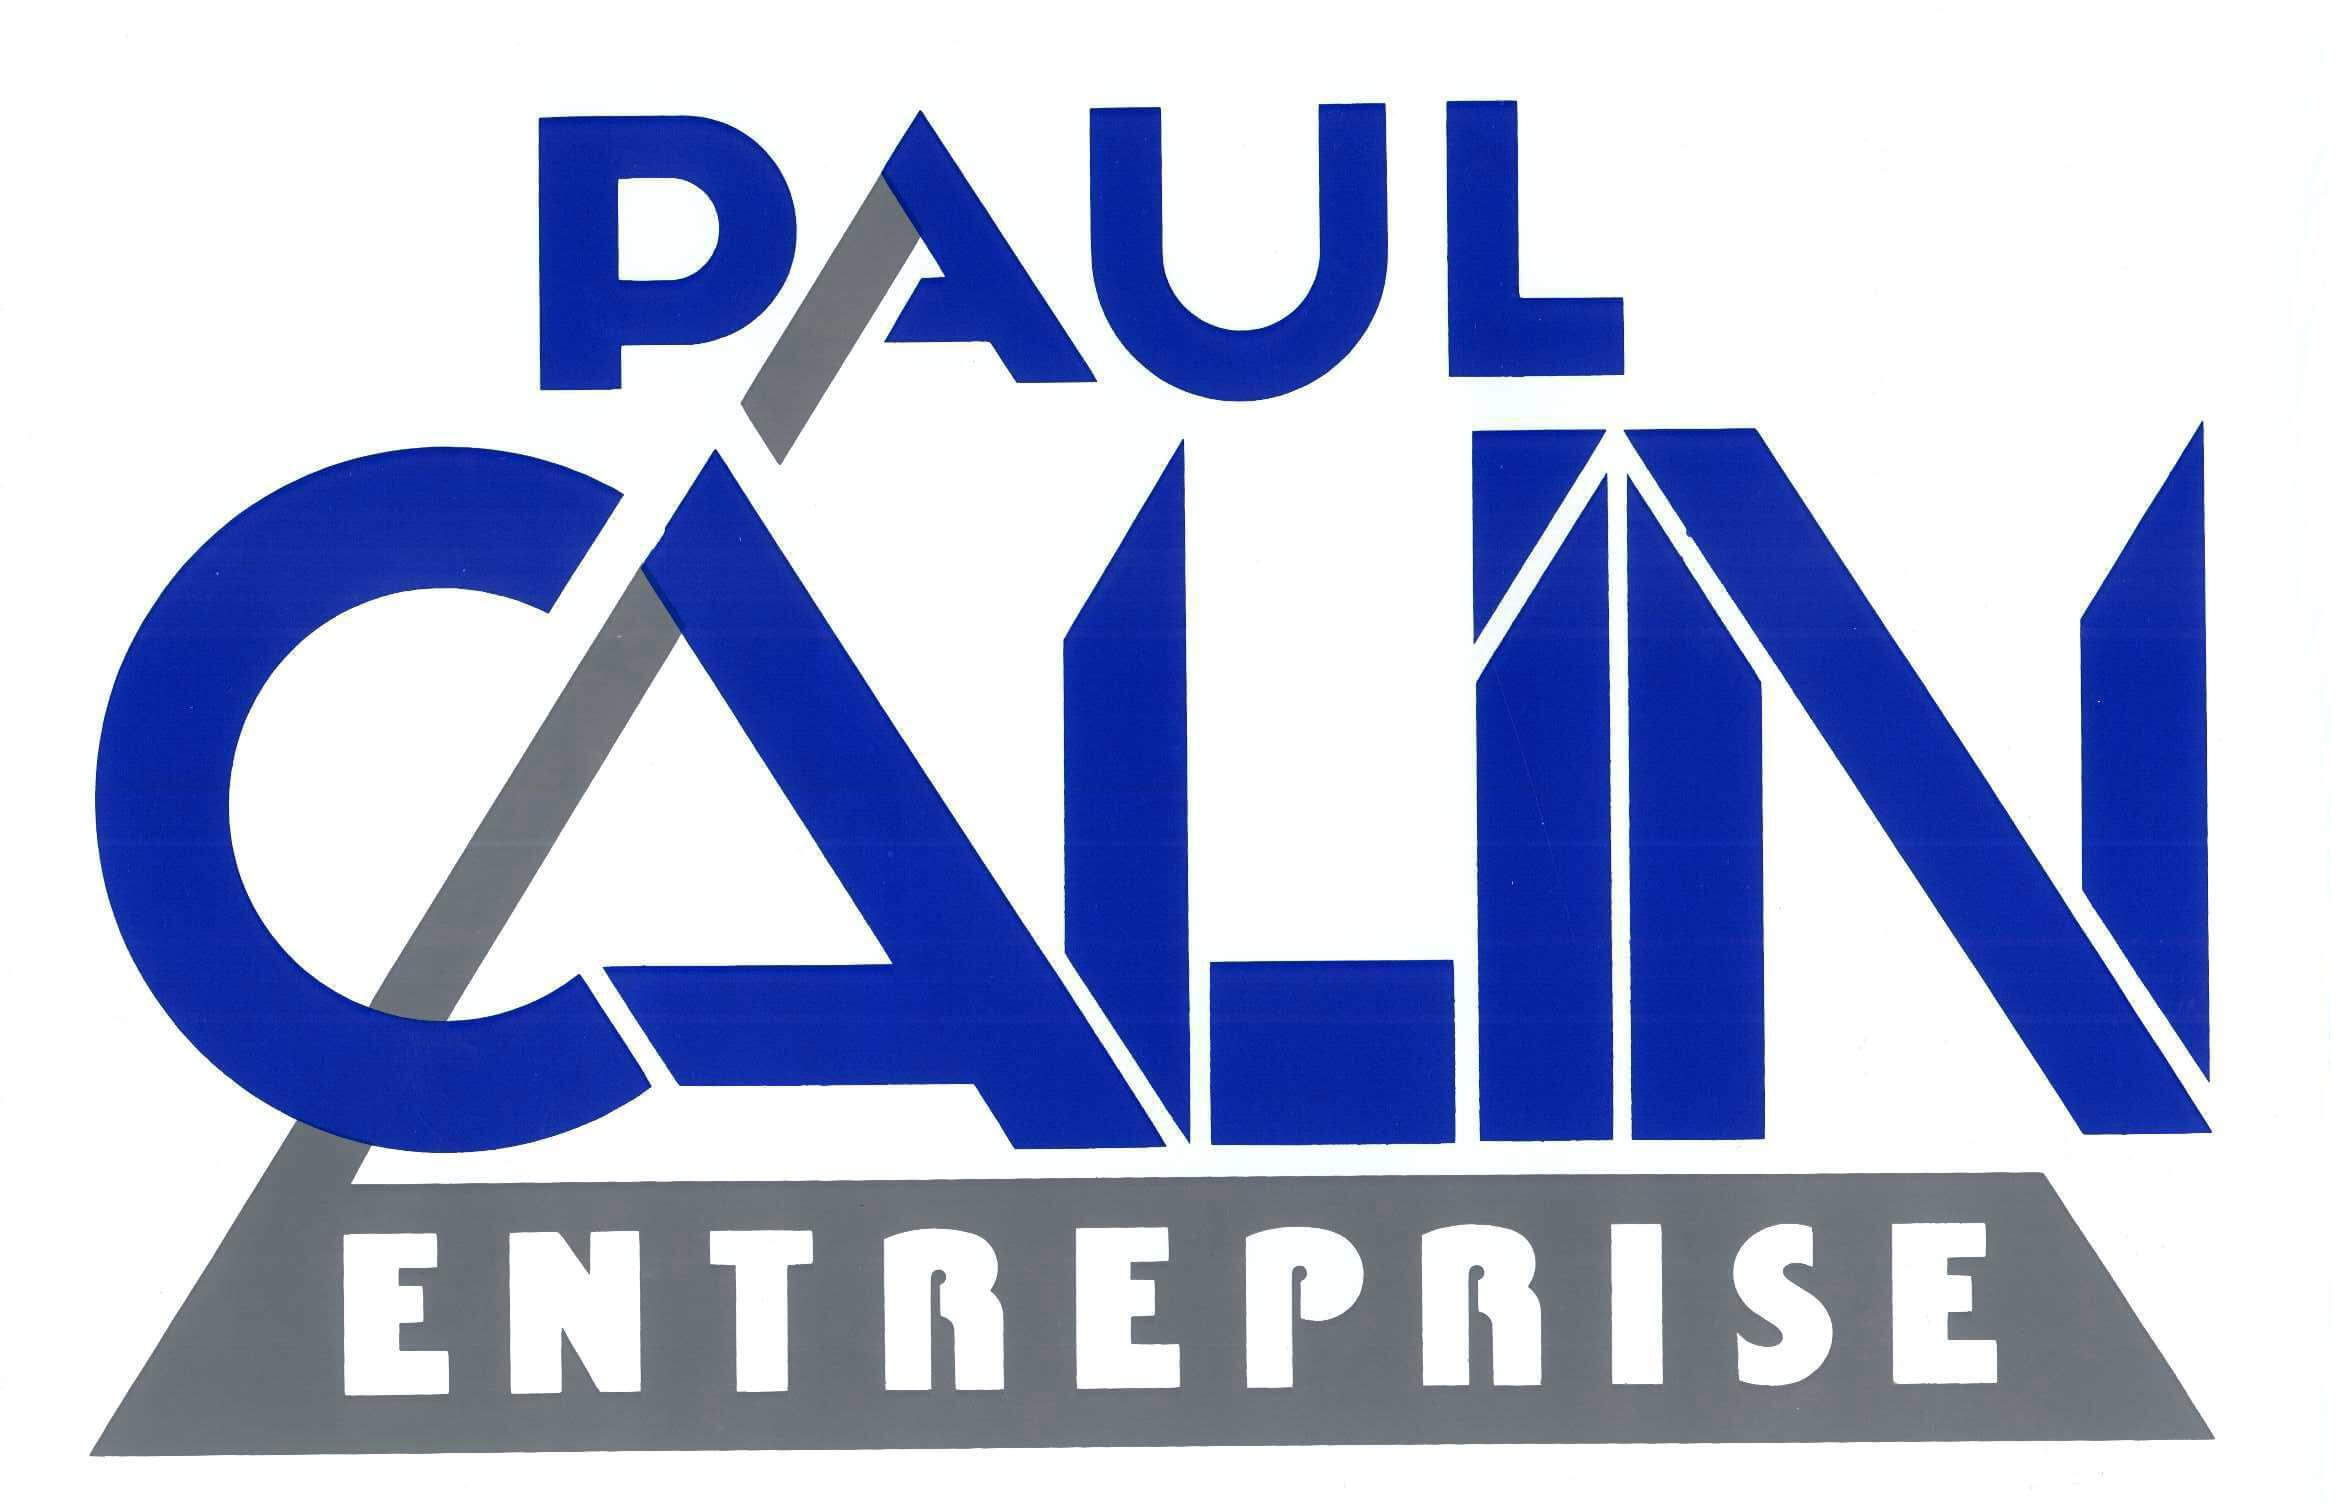 logo entreprise paul calin